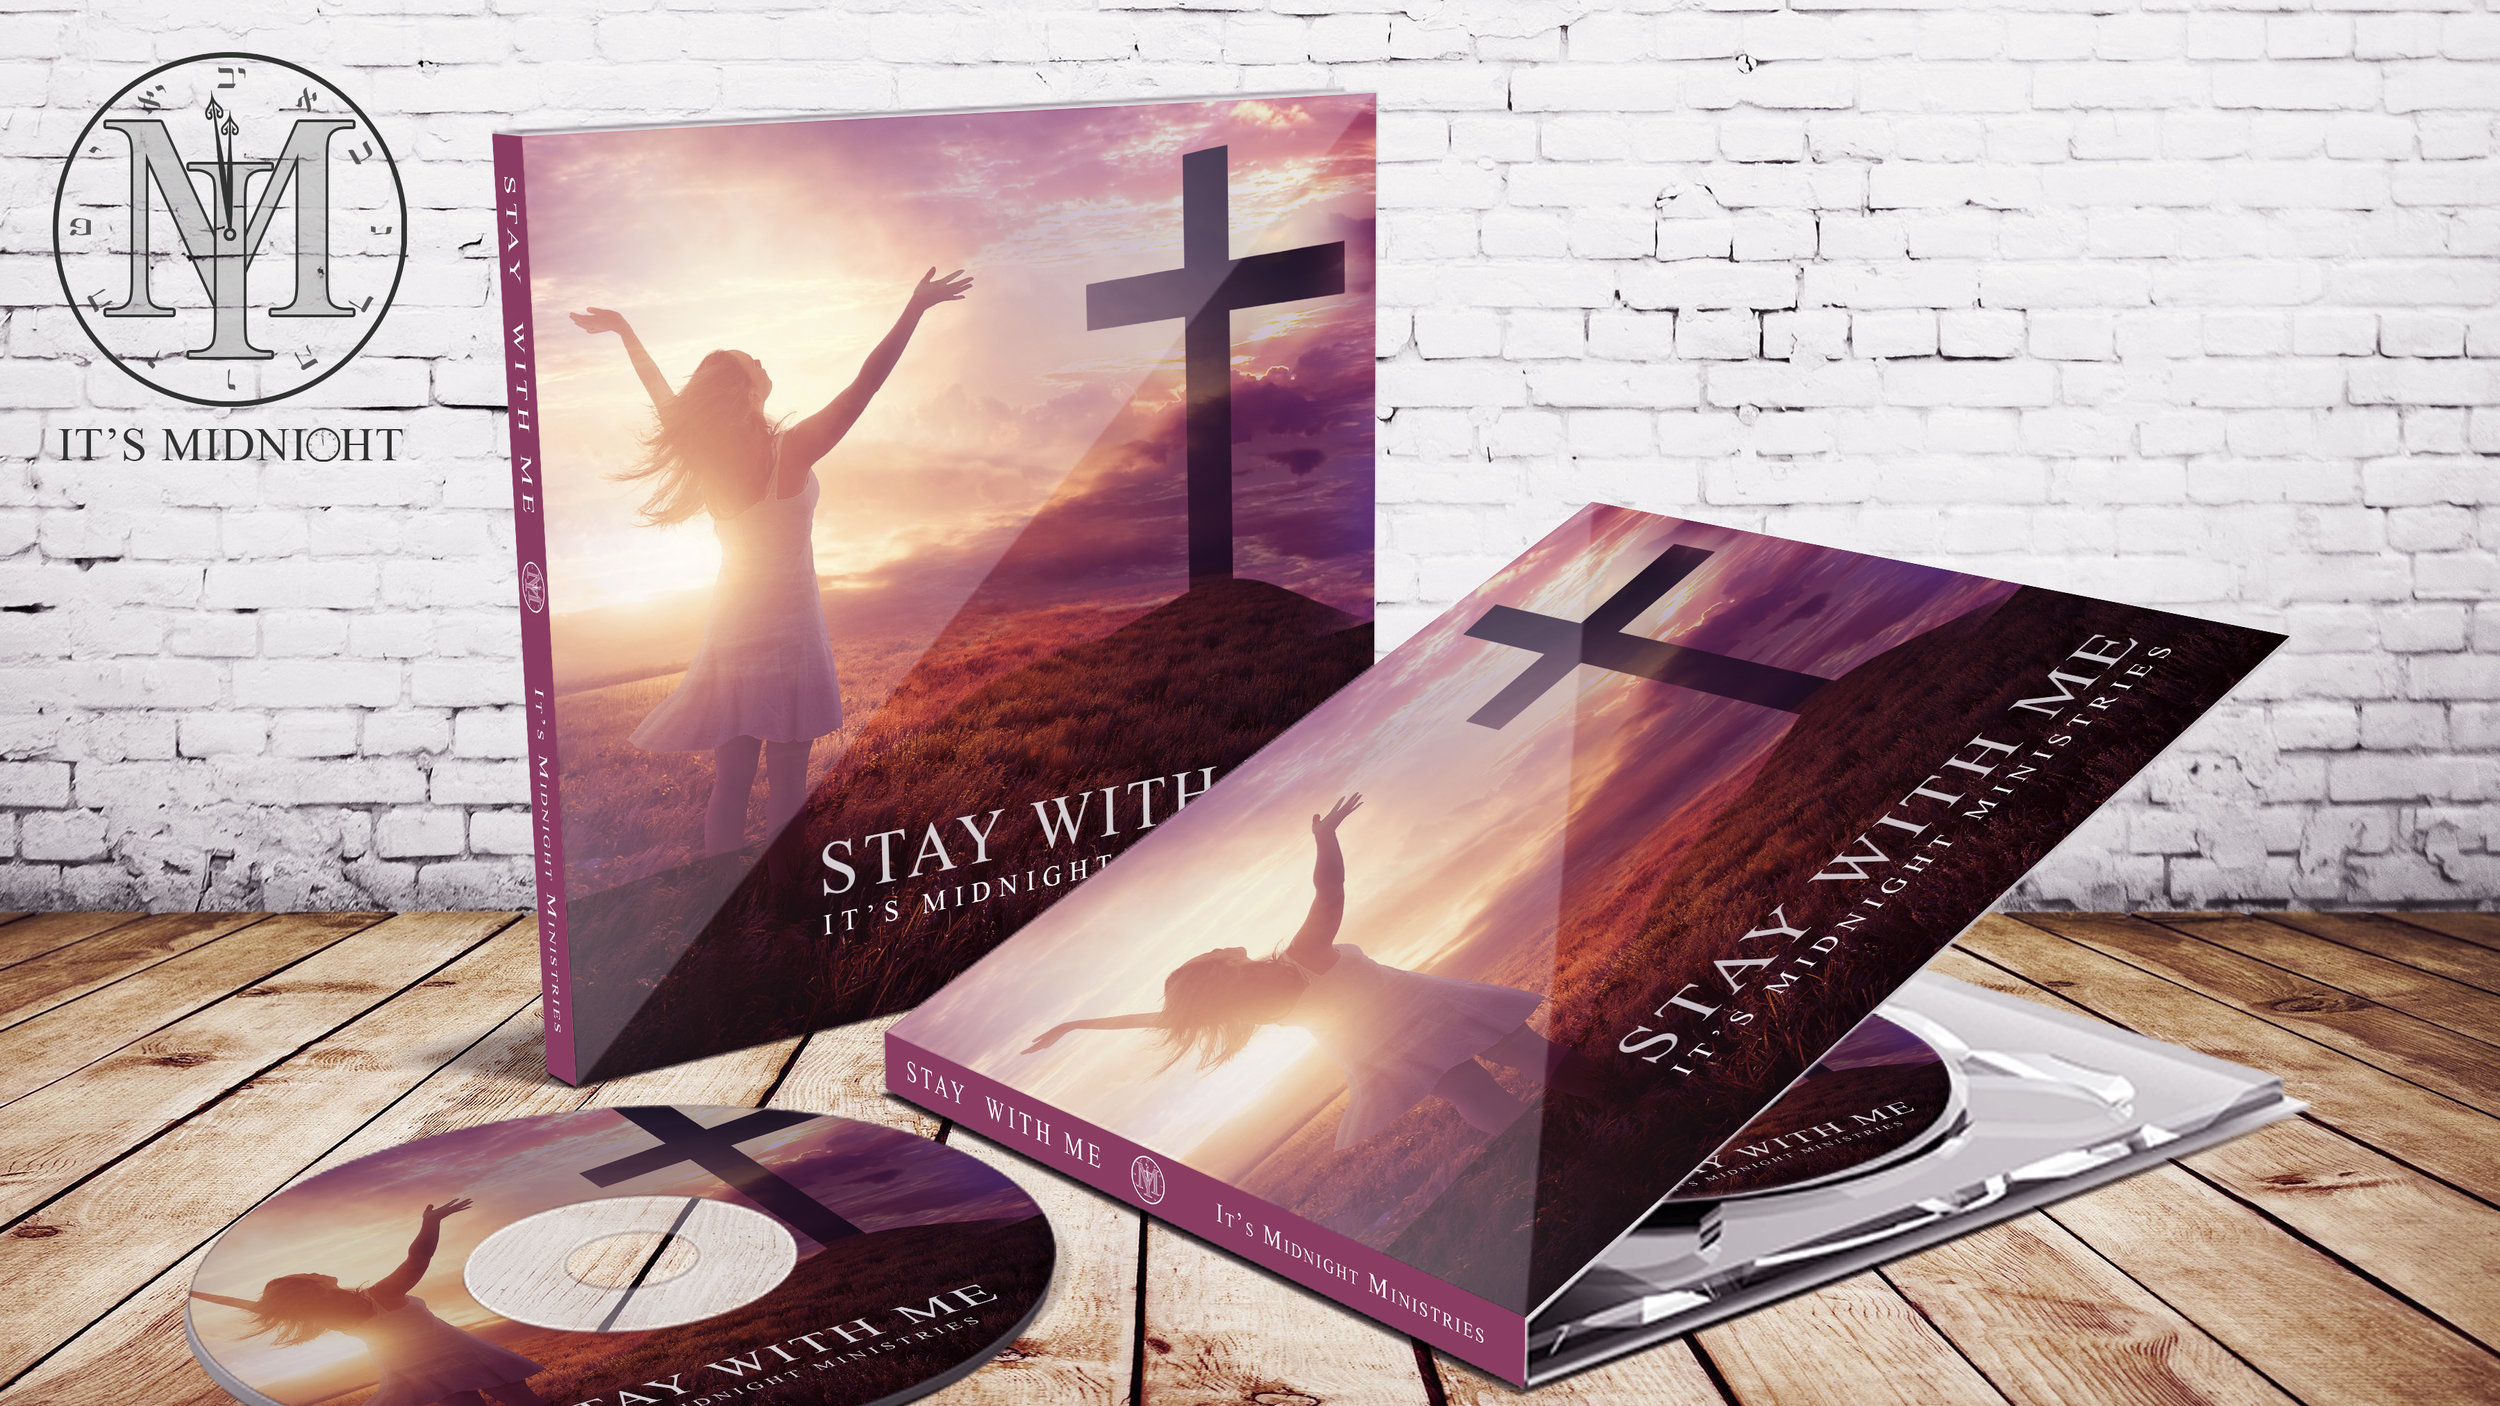 Stay With Me CD Mockup (16x9).jpg